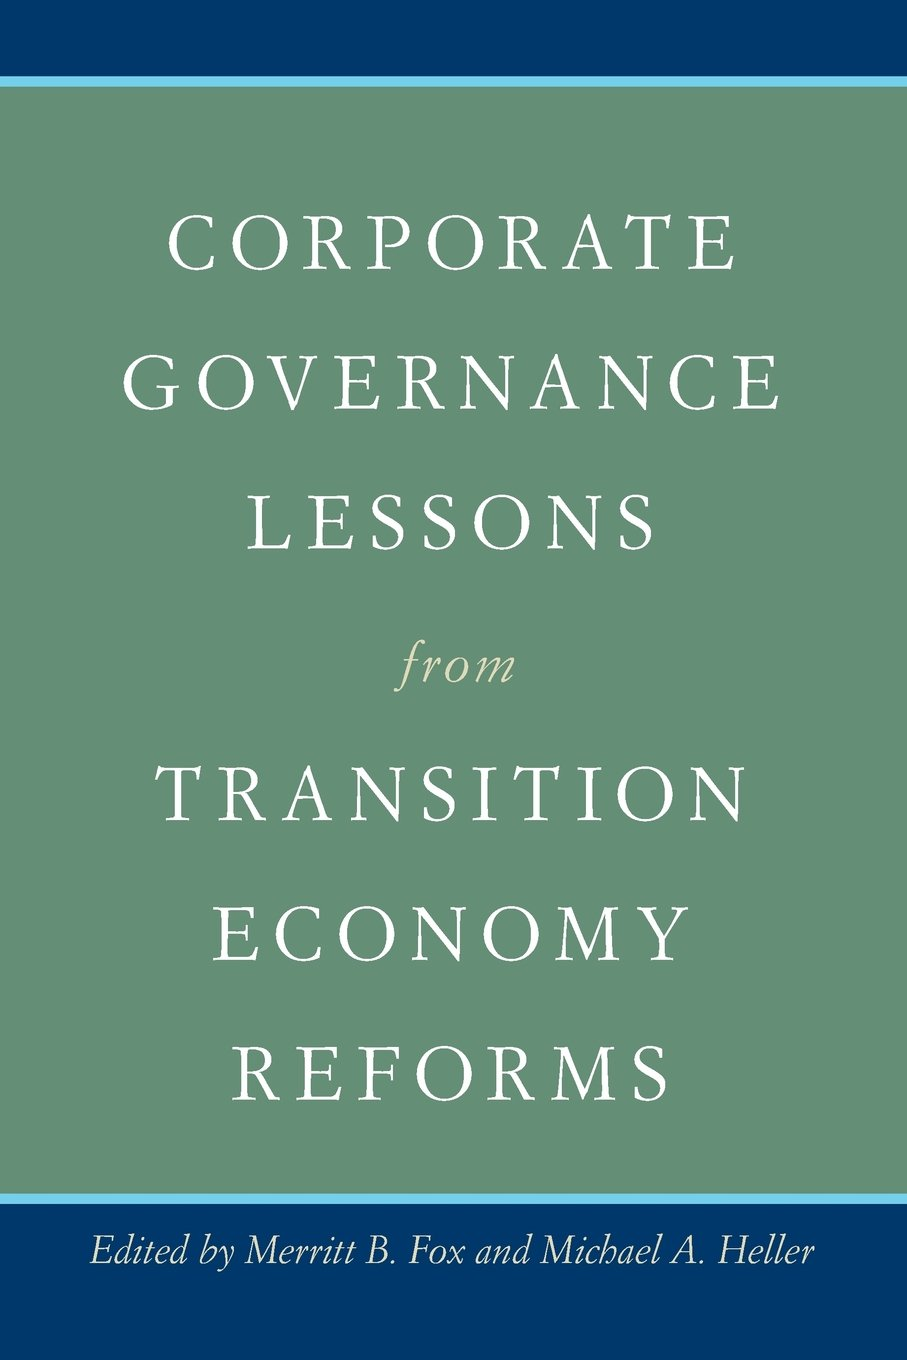 Corporate Governance Lessons from Transition Economy Reforms